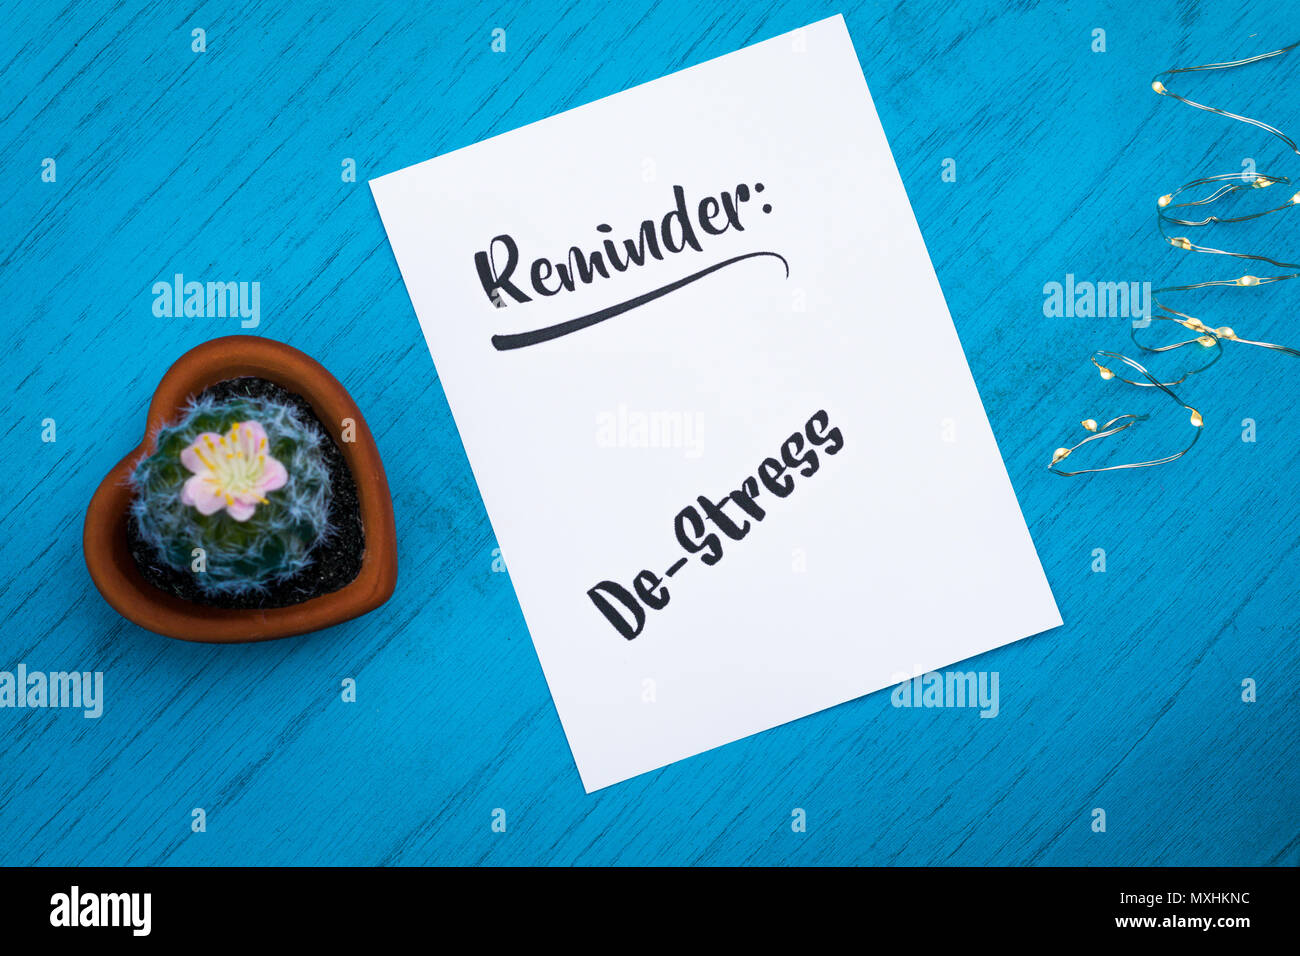 Reminder to De-Stress still life motivational concept on white paper and blue table flat lay in vintage tones - Stock Image